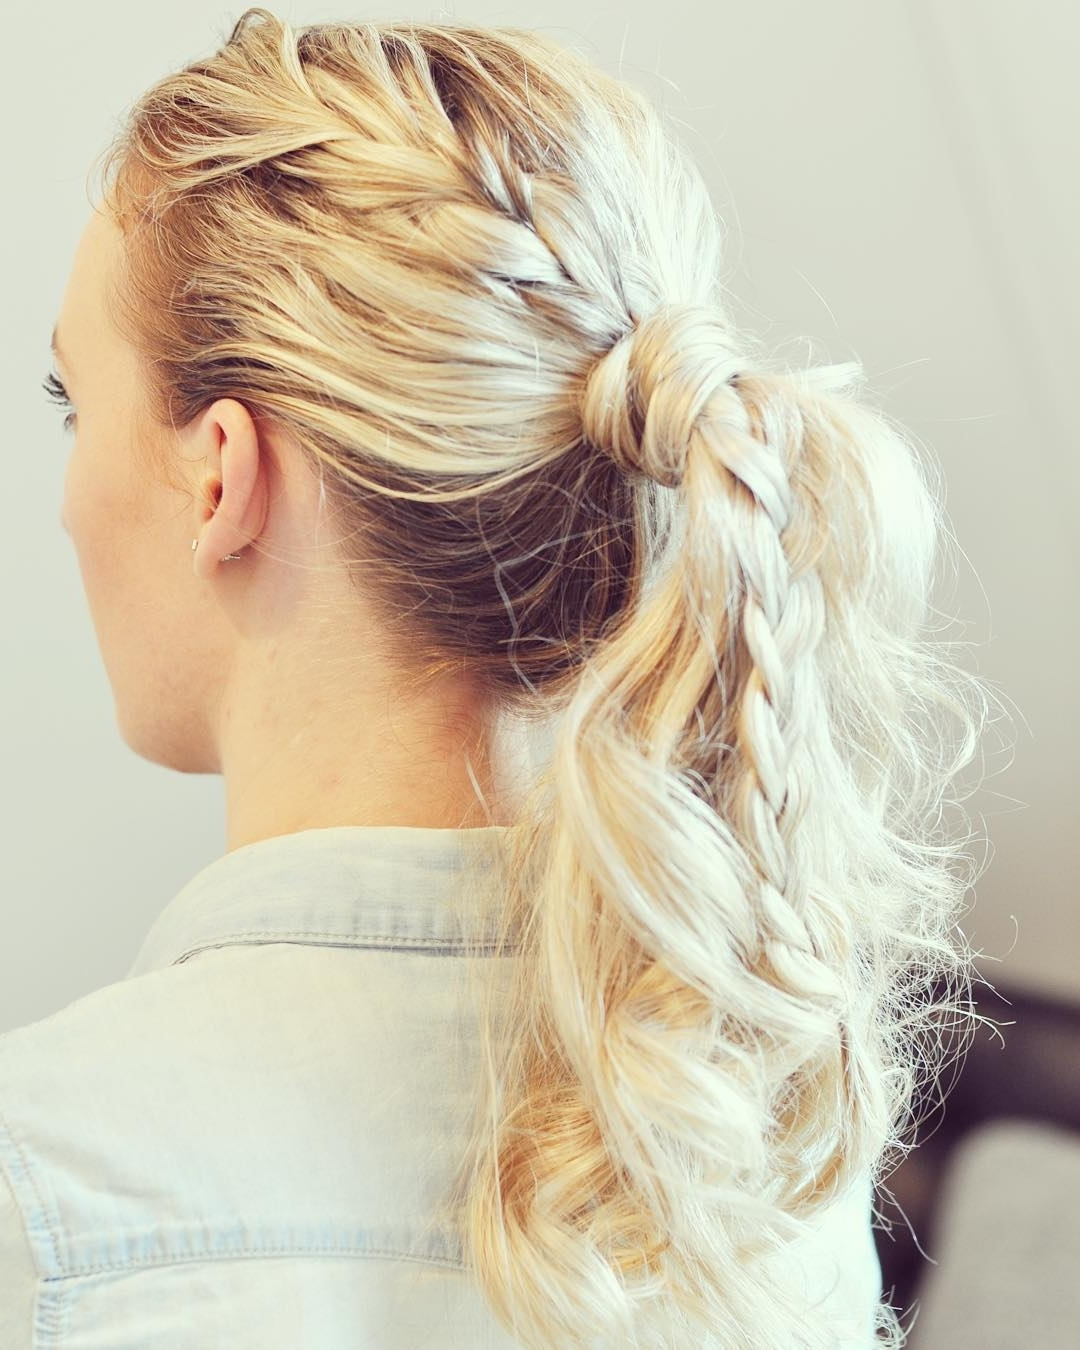 Hairstyle Guru Throughout Most Popular Braided Crown Pony Hairstyles (View 10 of 20)